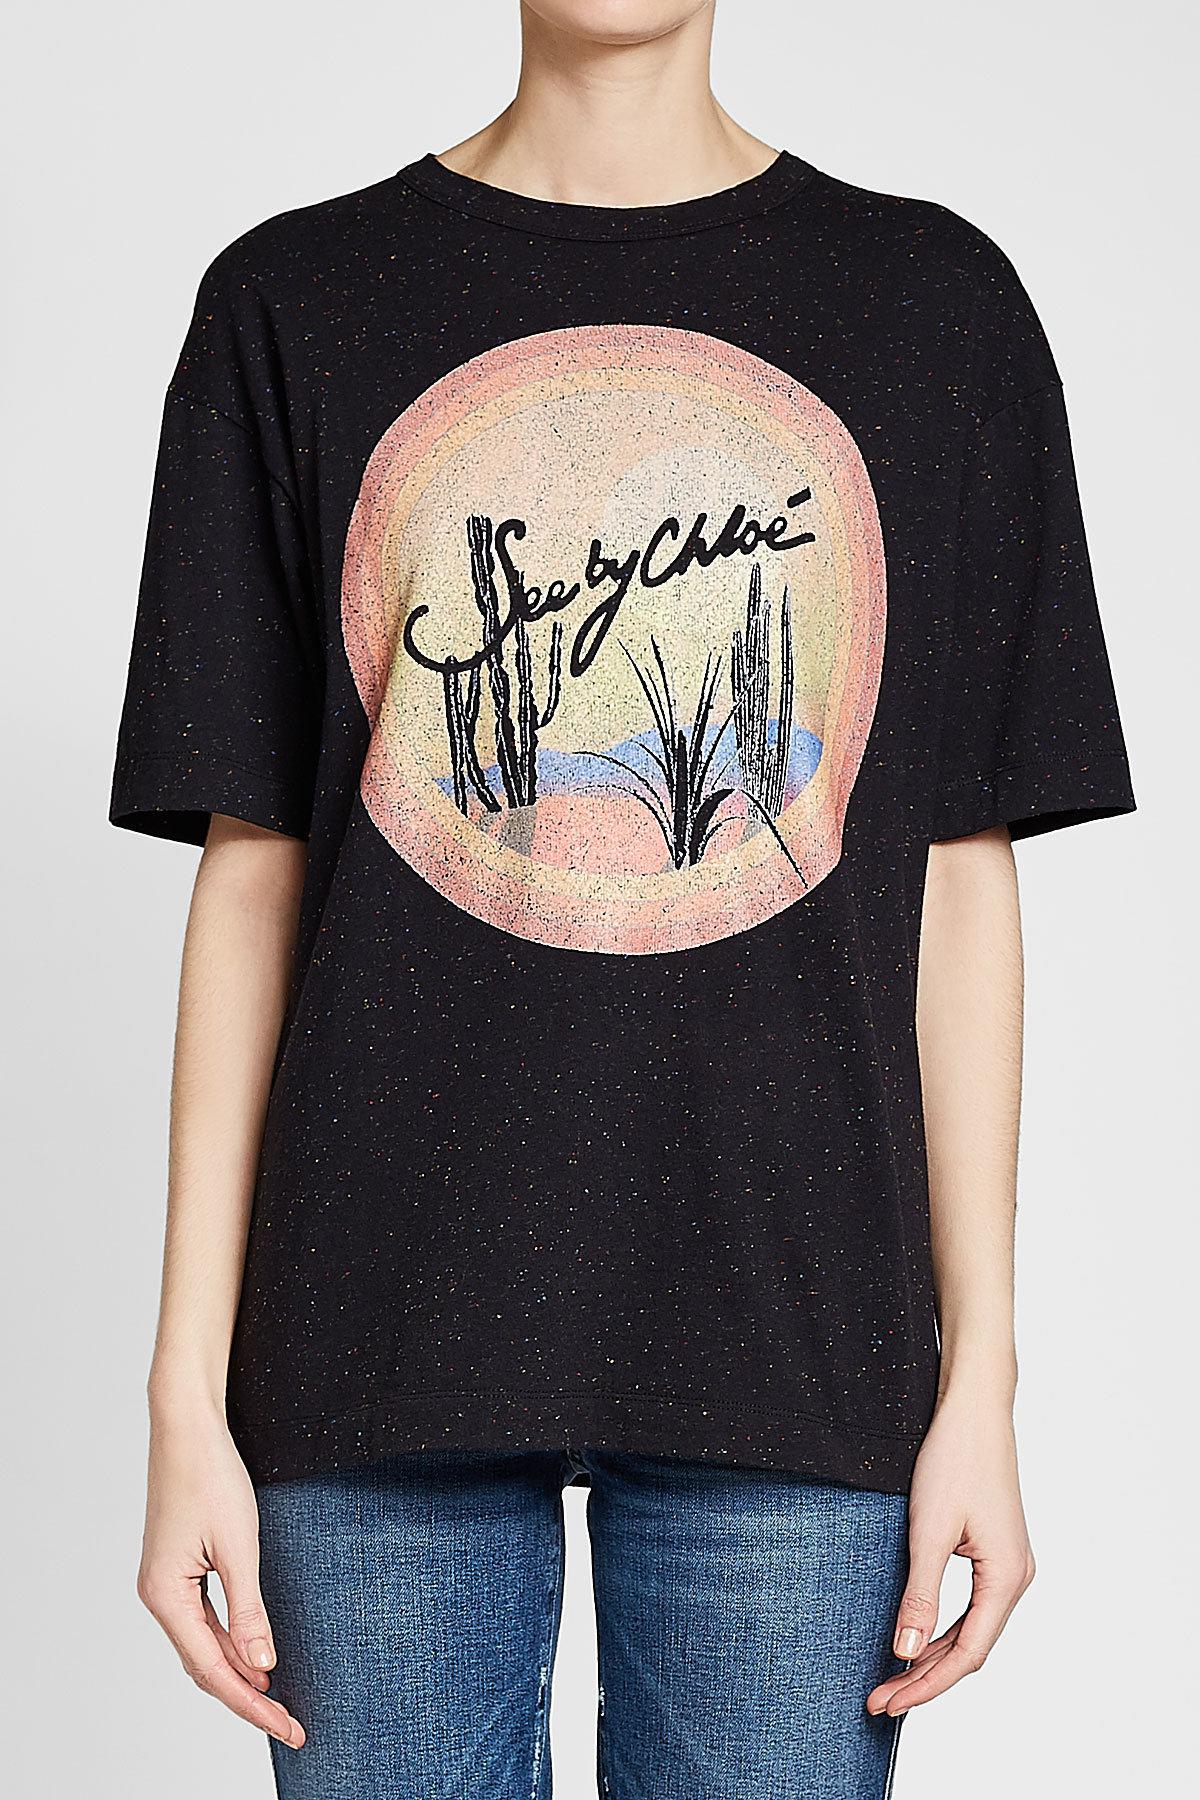 2e99b325 See By Chloé Printed Cotton T-shirt in Black - Lyst